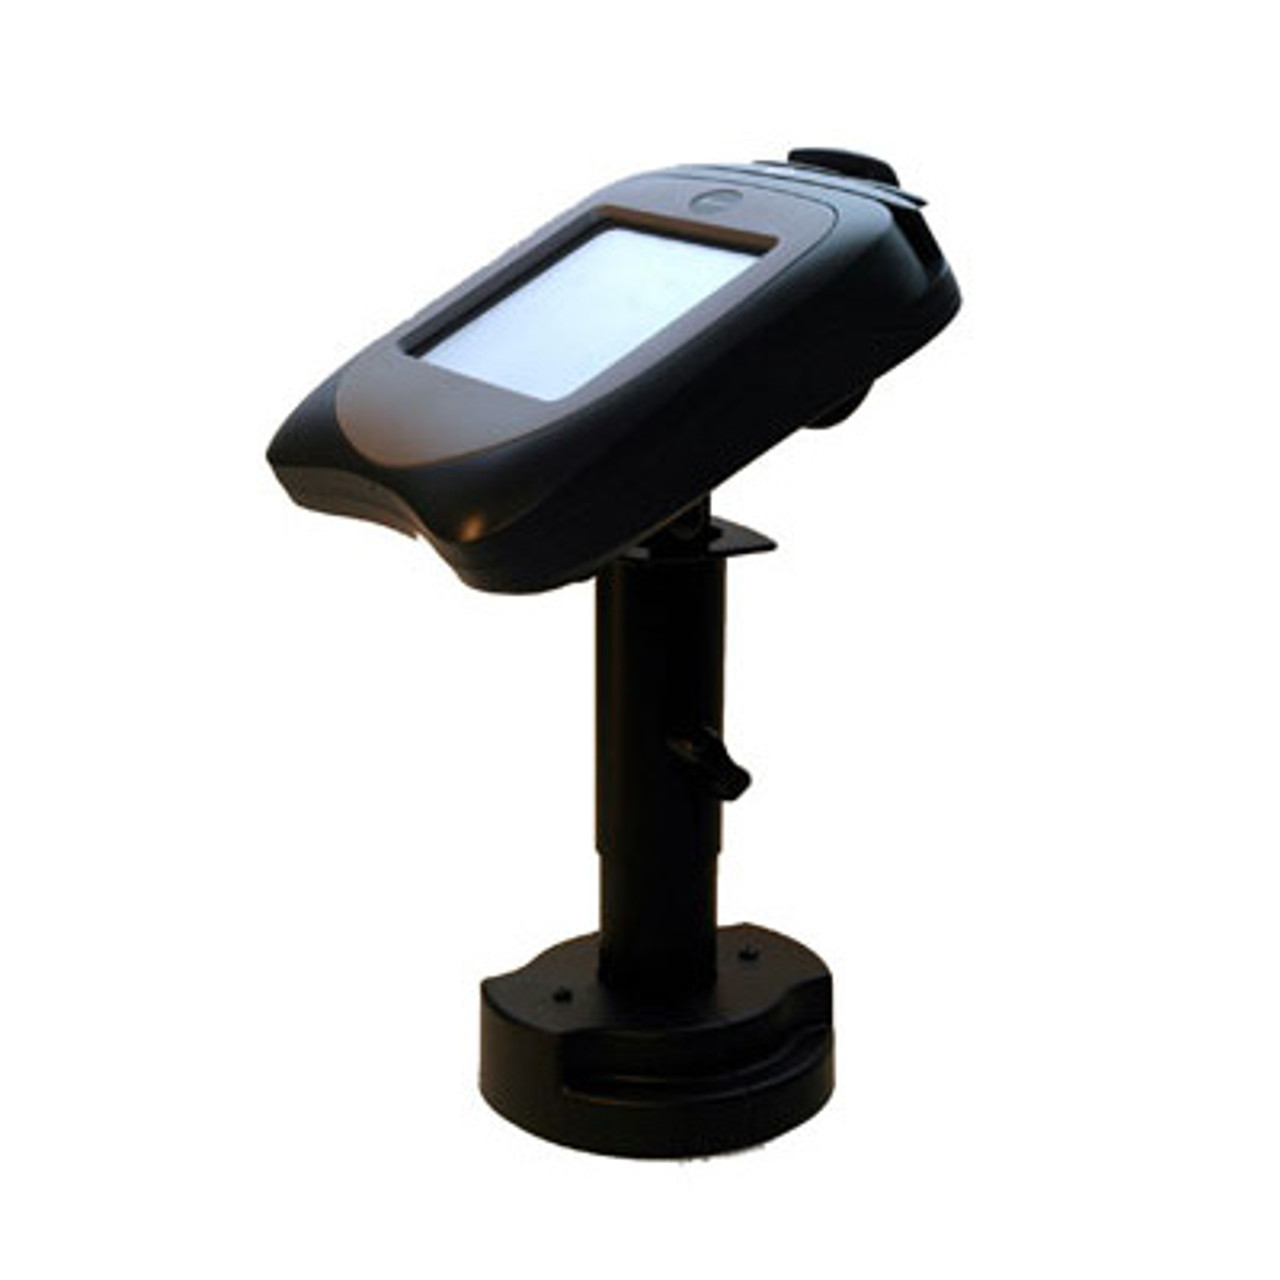 Hypercom L4250 Credit Card Stand Telescoping Pedestal by Swivel Stands